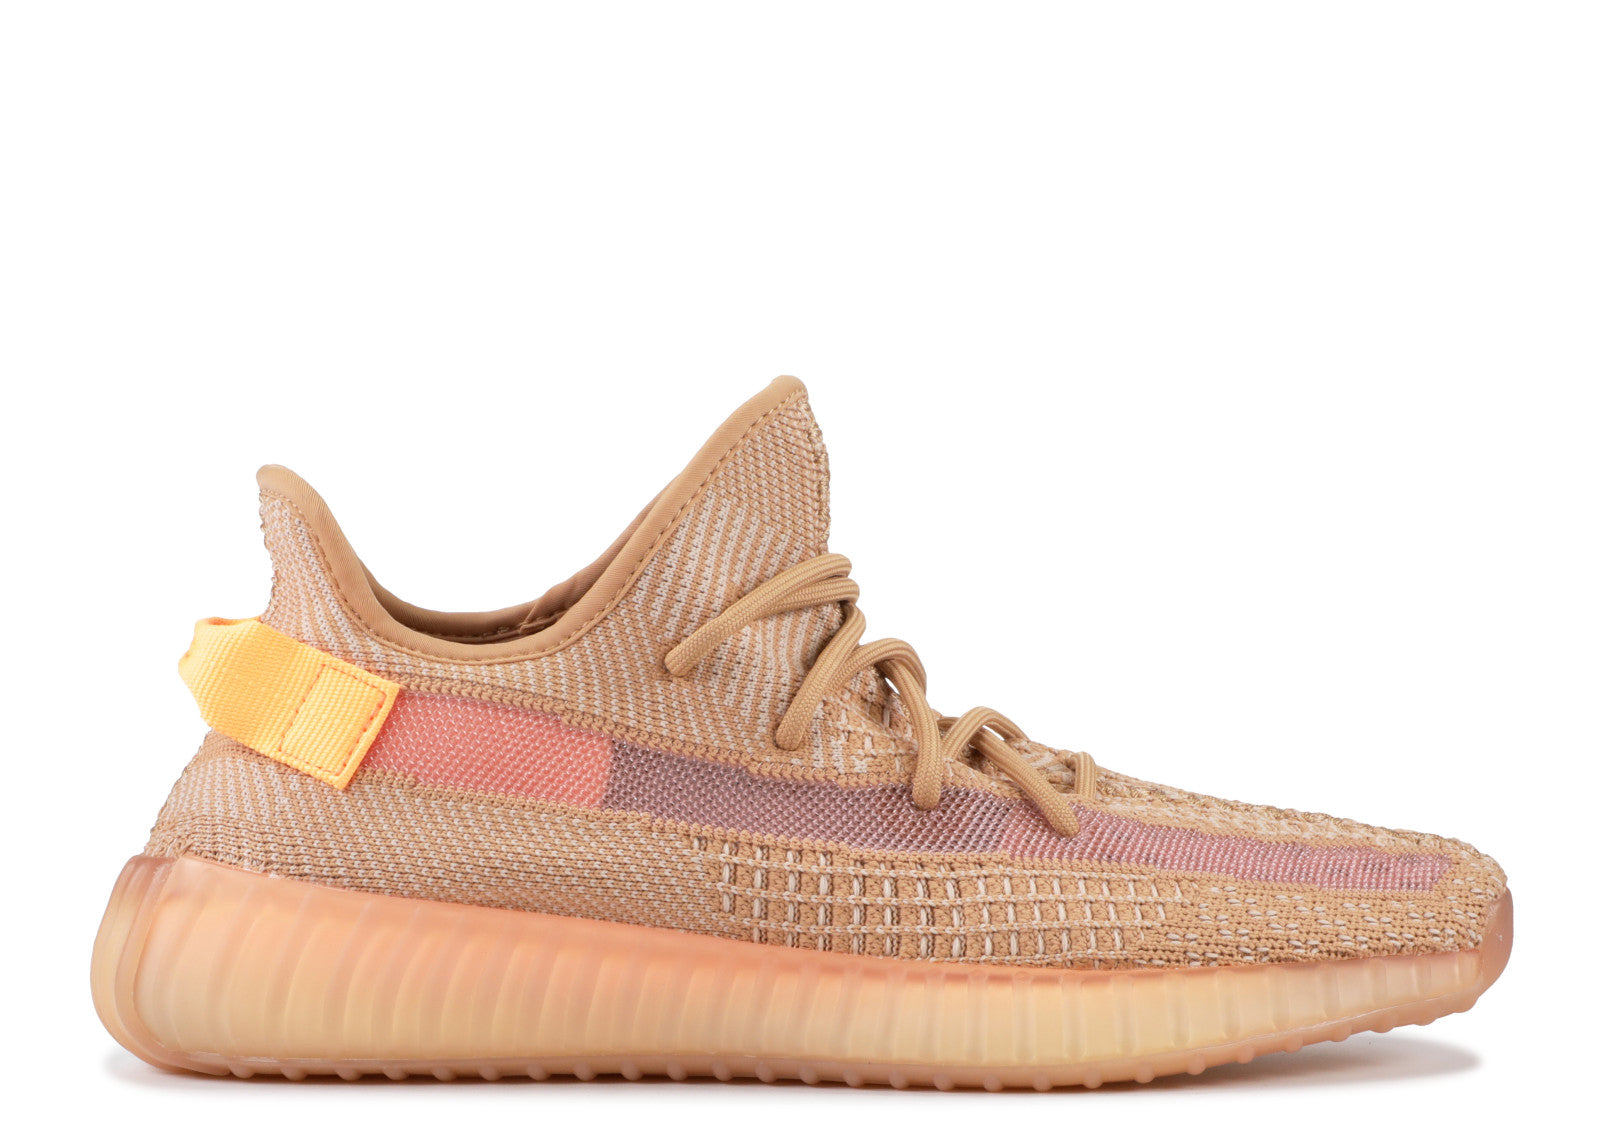 premium selection 04145 2c95d ADIDAS YEEZY BOOST 350 V2 CLAY – ISPIR